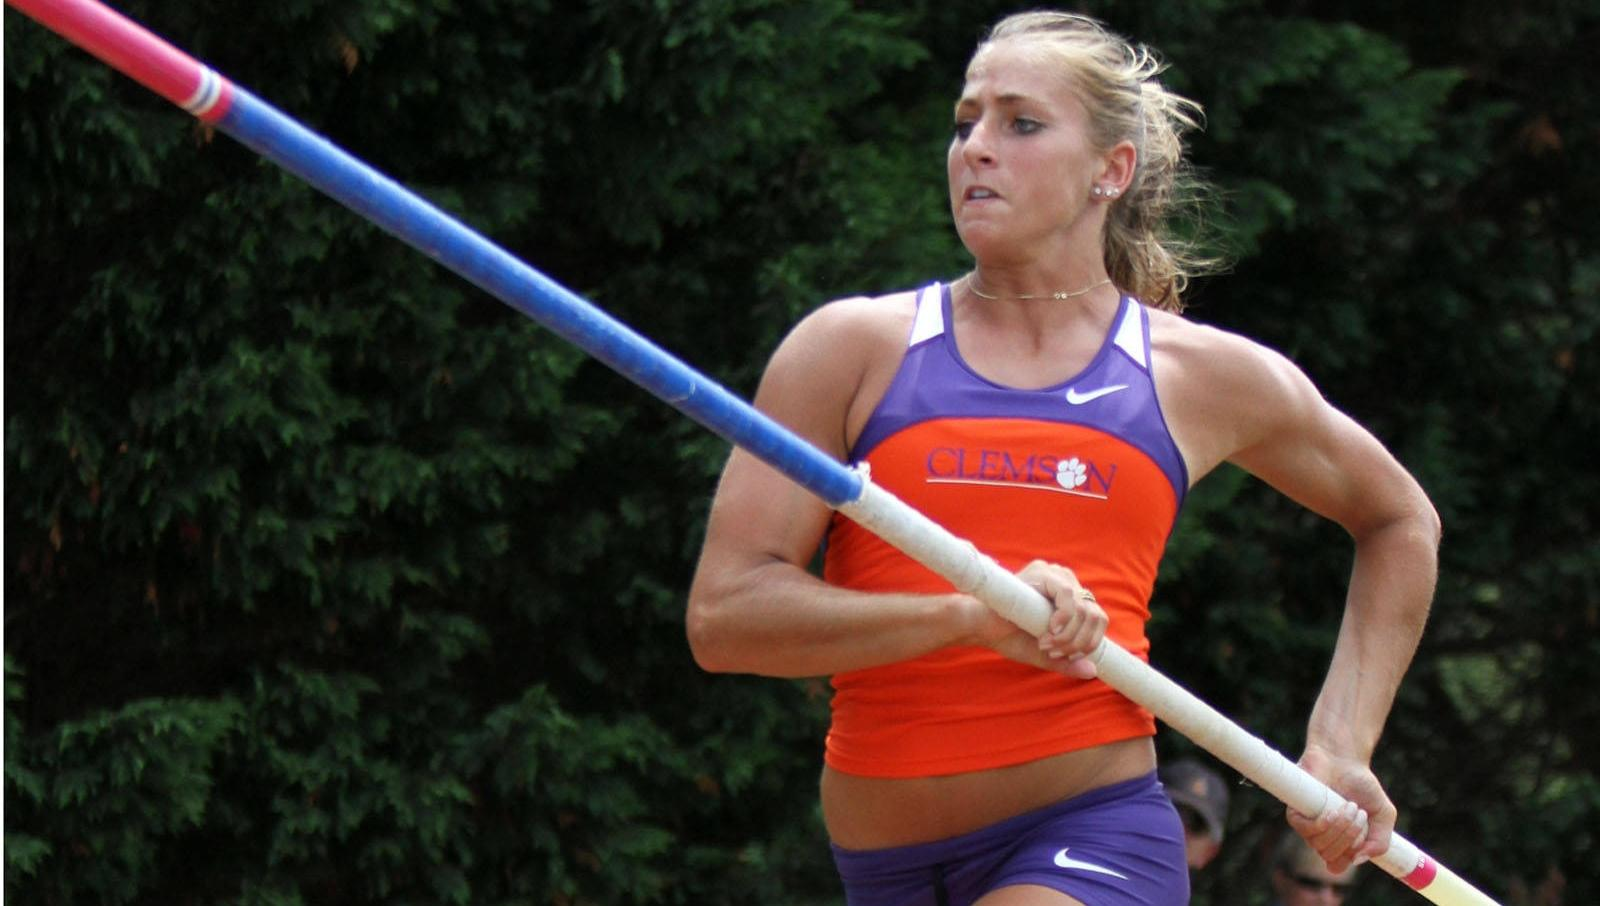 Five Tigers Earn Spots on All-ACC Academic Outdoor Track & Field Teams